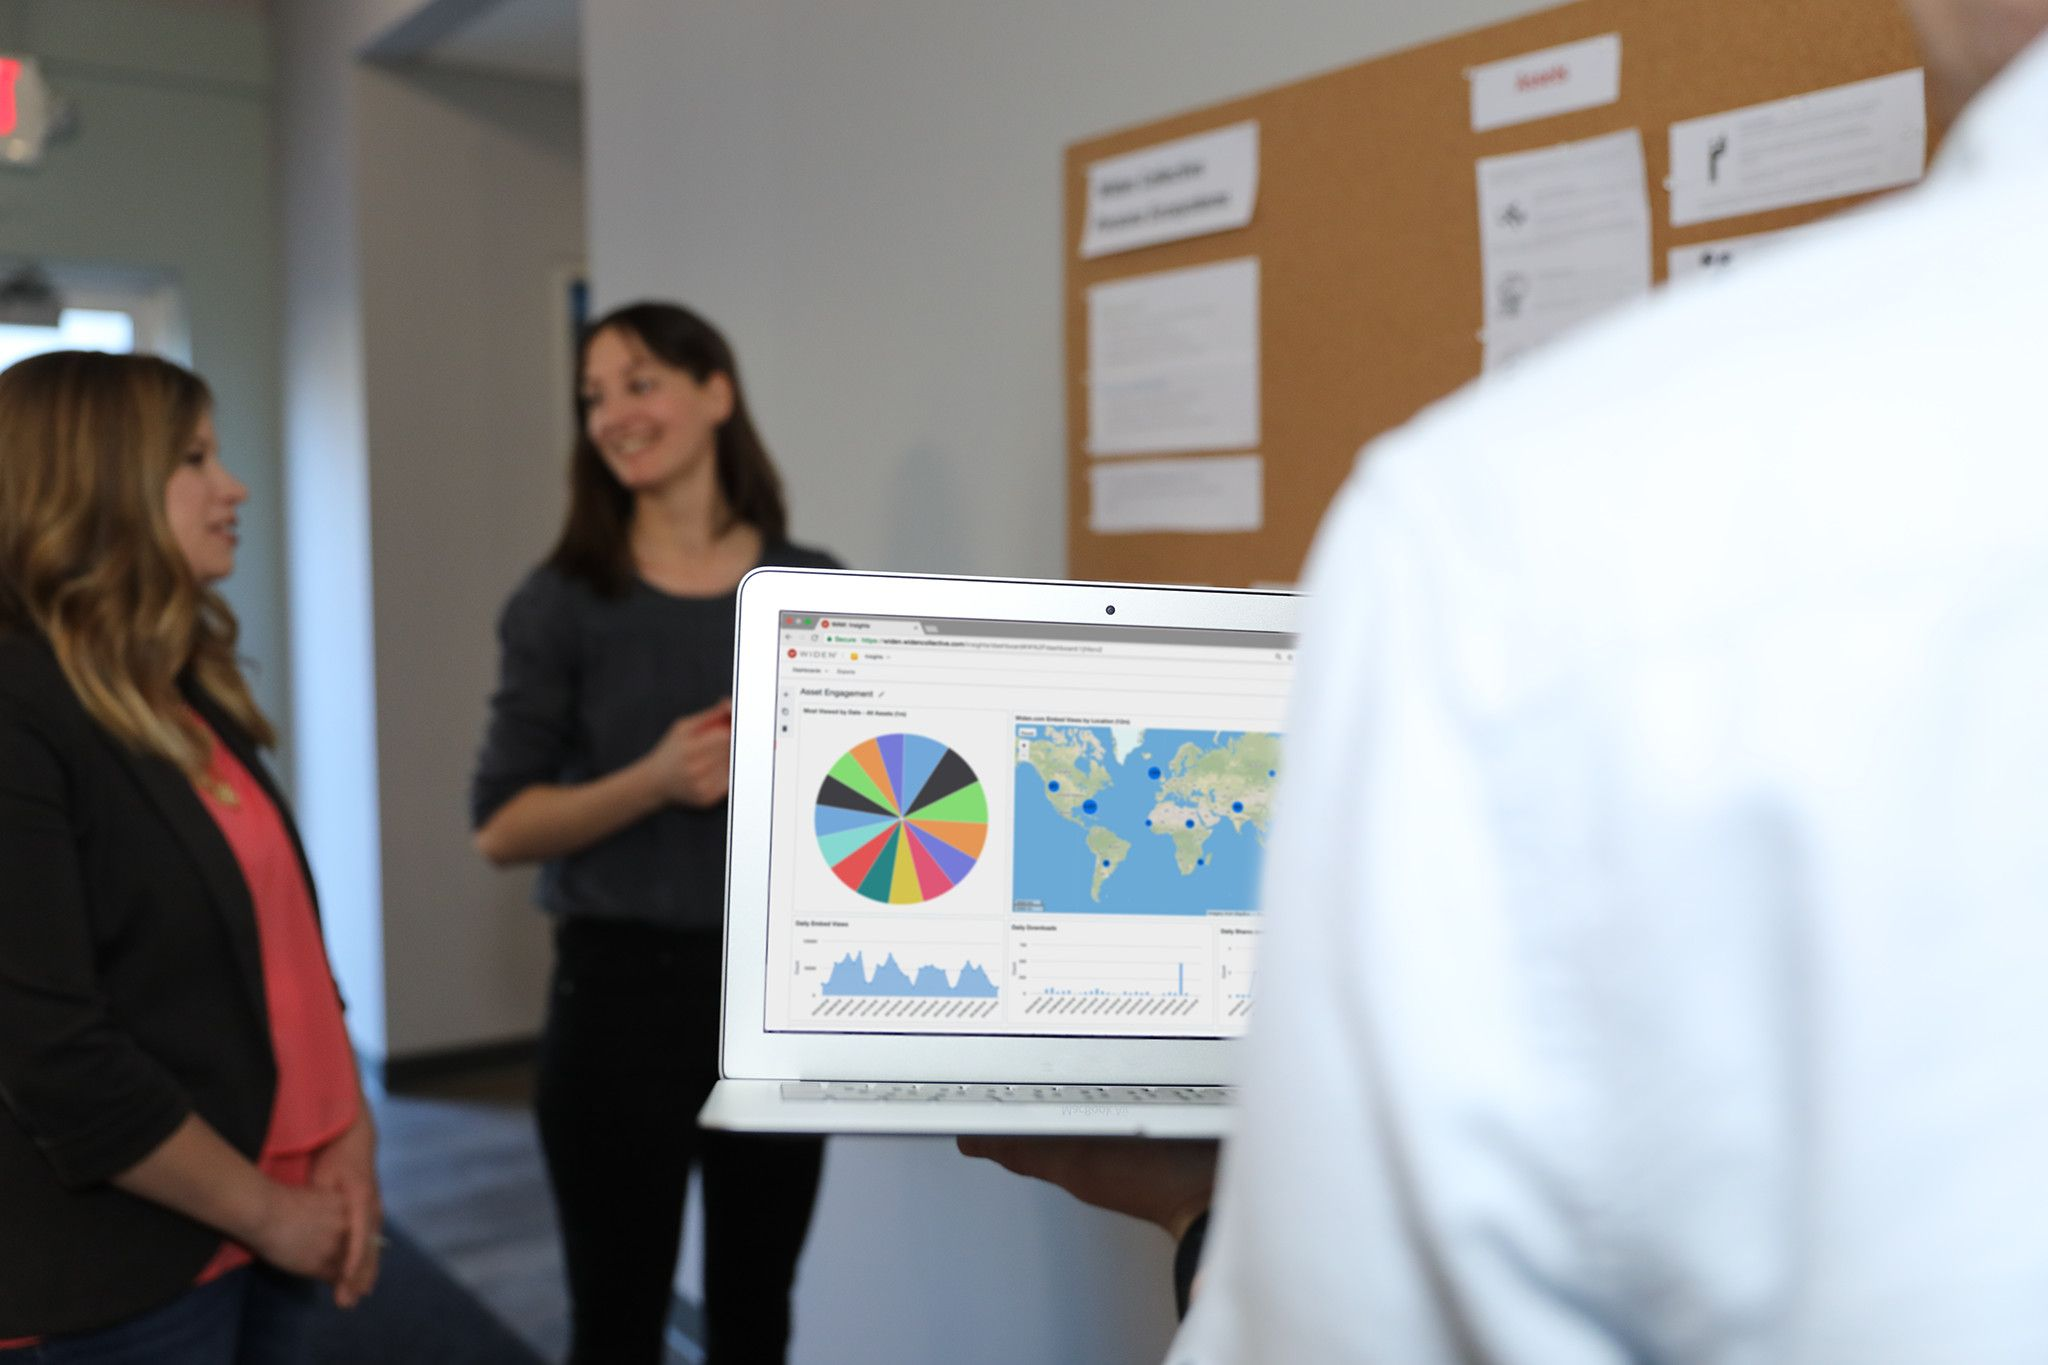 Two women out of focus, talking in the background. With a person whose back is to the camera holding a laptop open to the Widen Collective Insights app in the foreground of the photo.